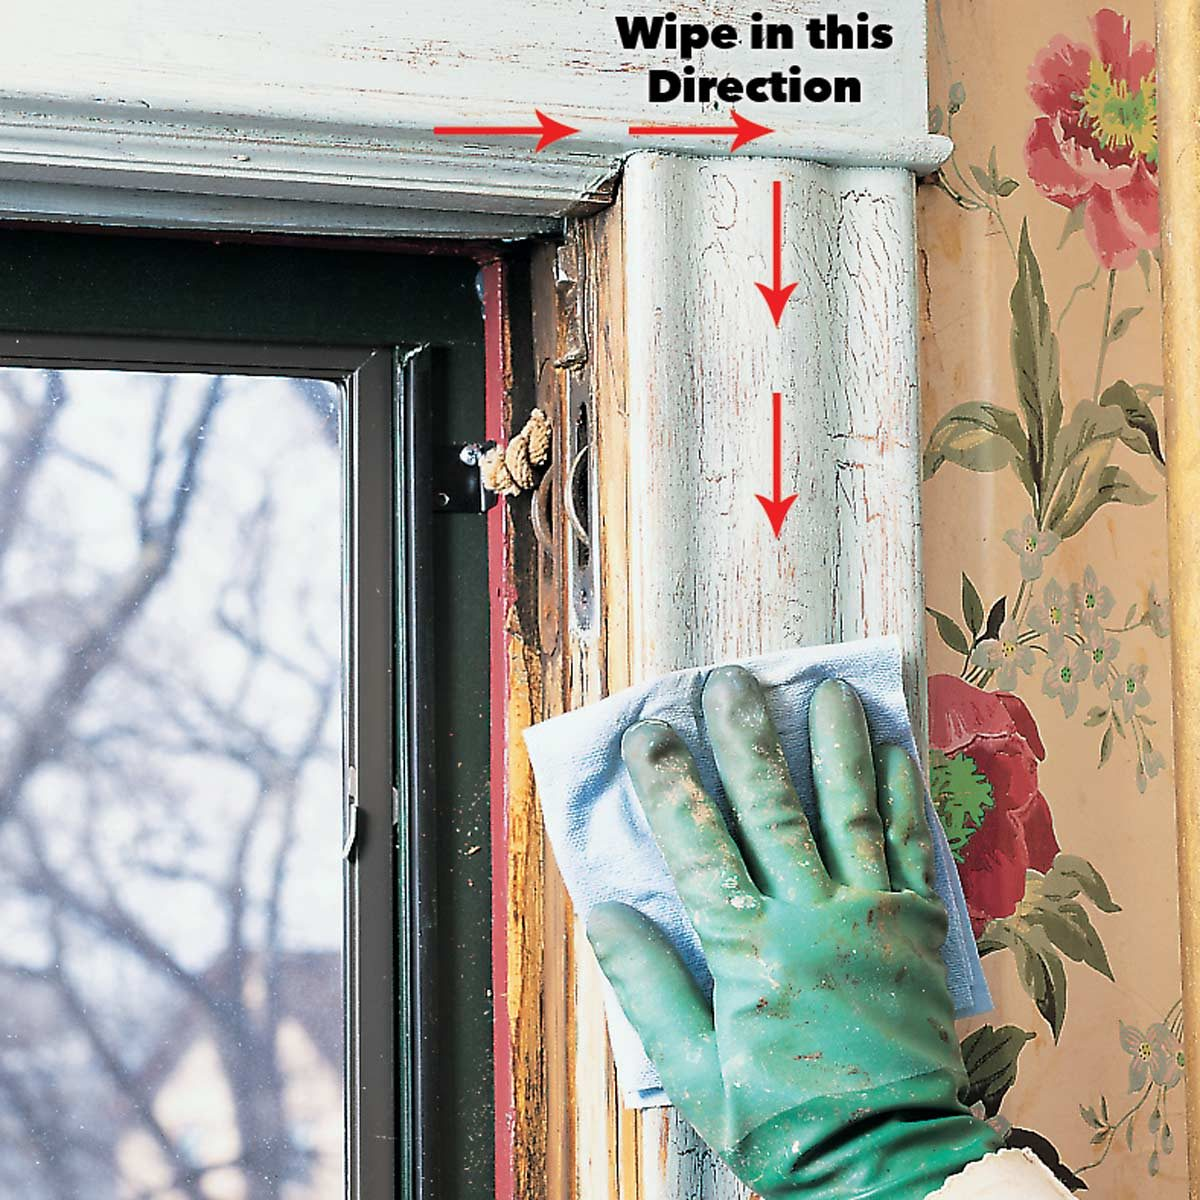 wipe away clean lead paint